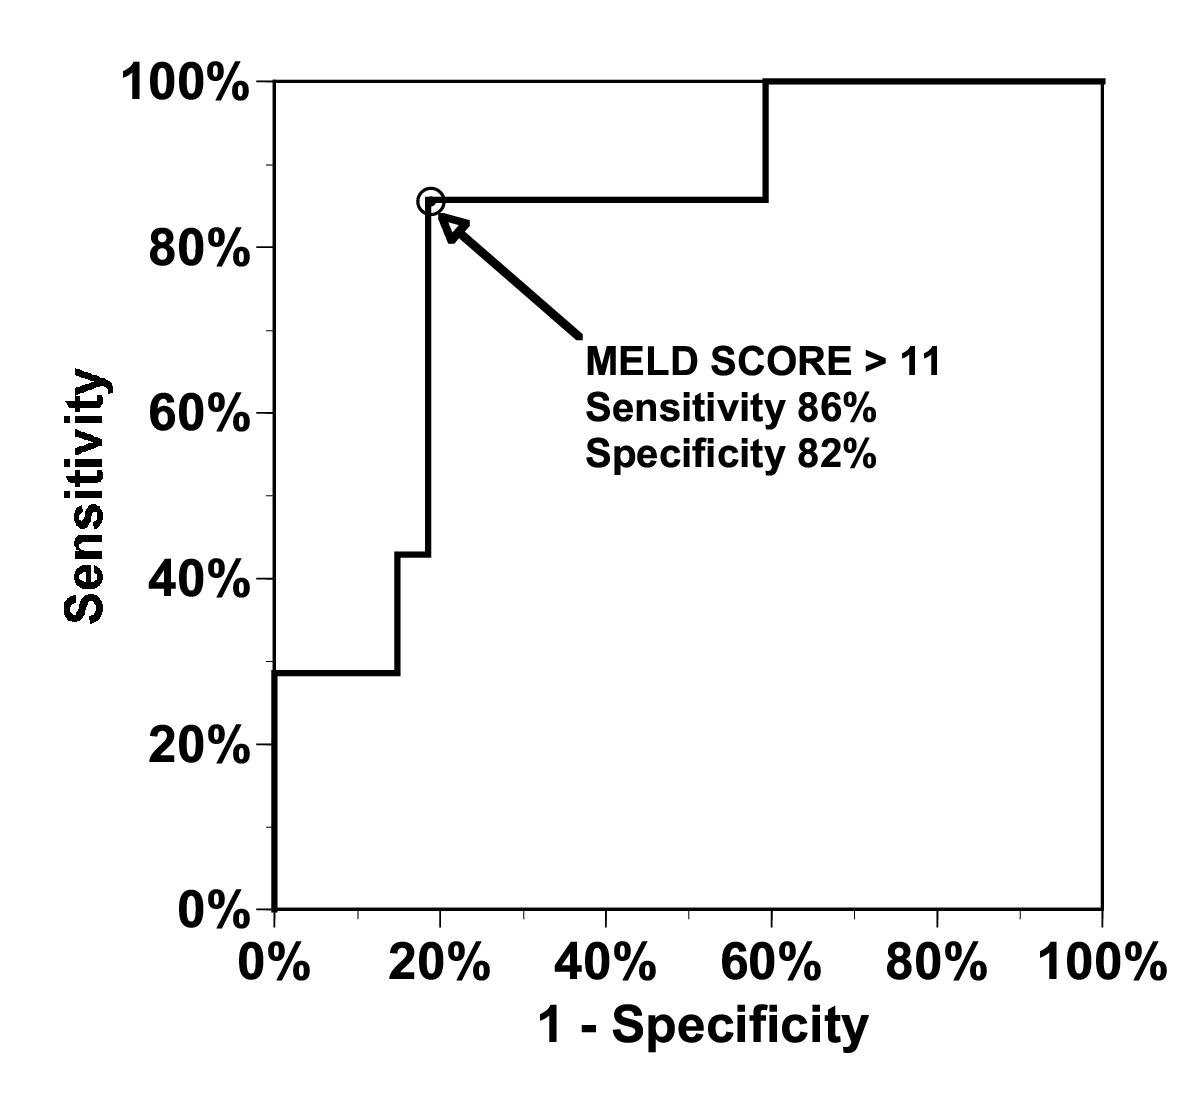 https://static-content.springer.com/image/art%3A10.1186%2F1471-230X-2-2/MediaObjects/12876_2001_Article_16_Fig1_HTML.jpg